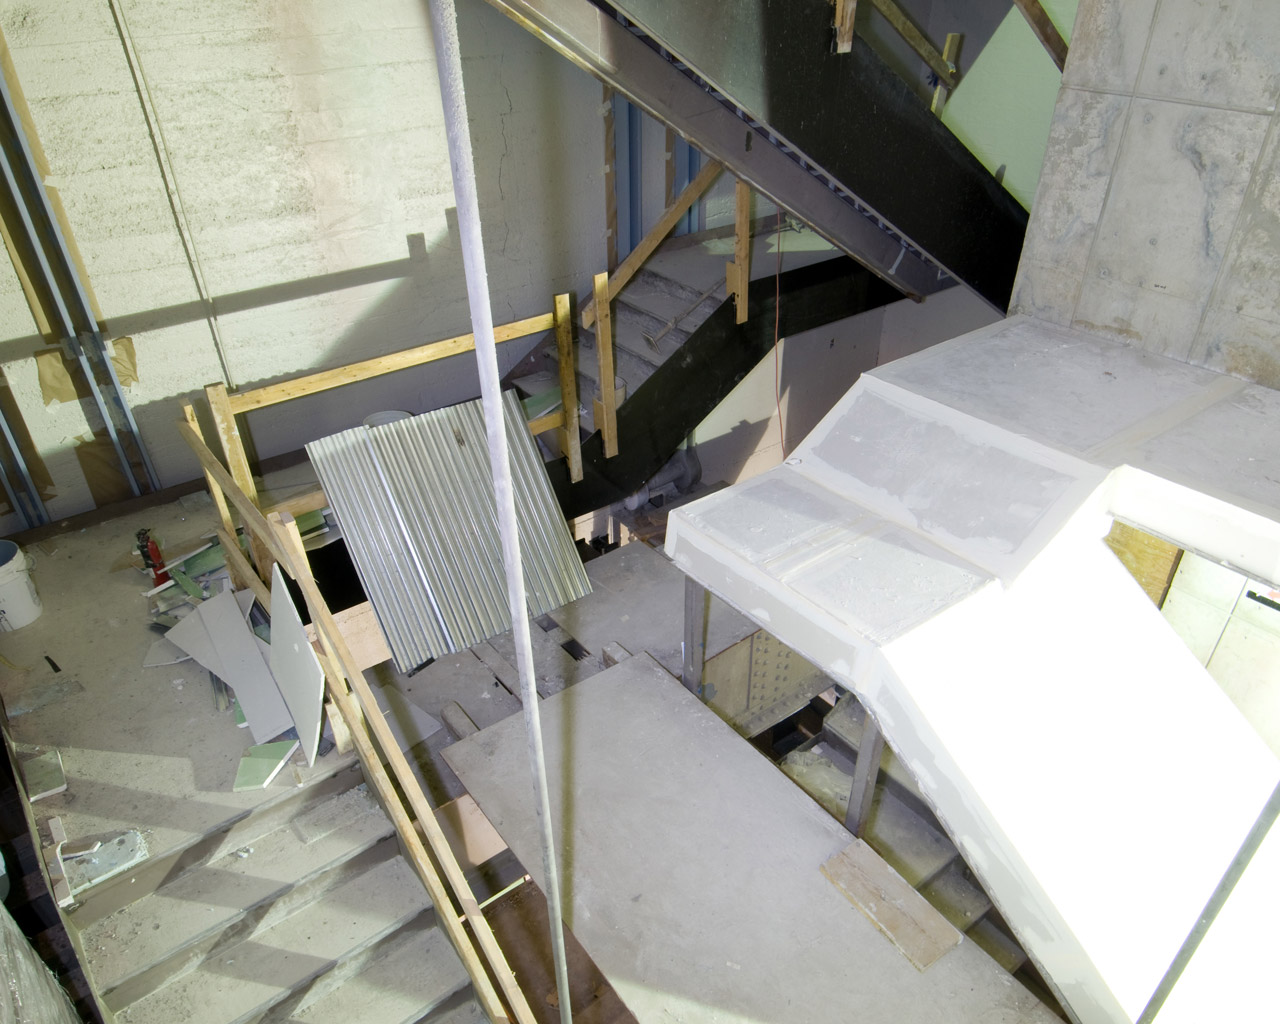 Intersection of Stair A and Stair B